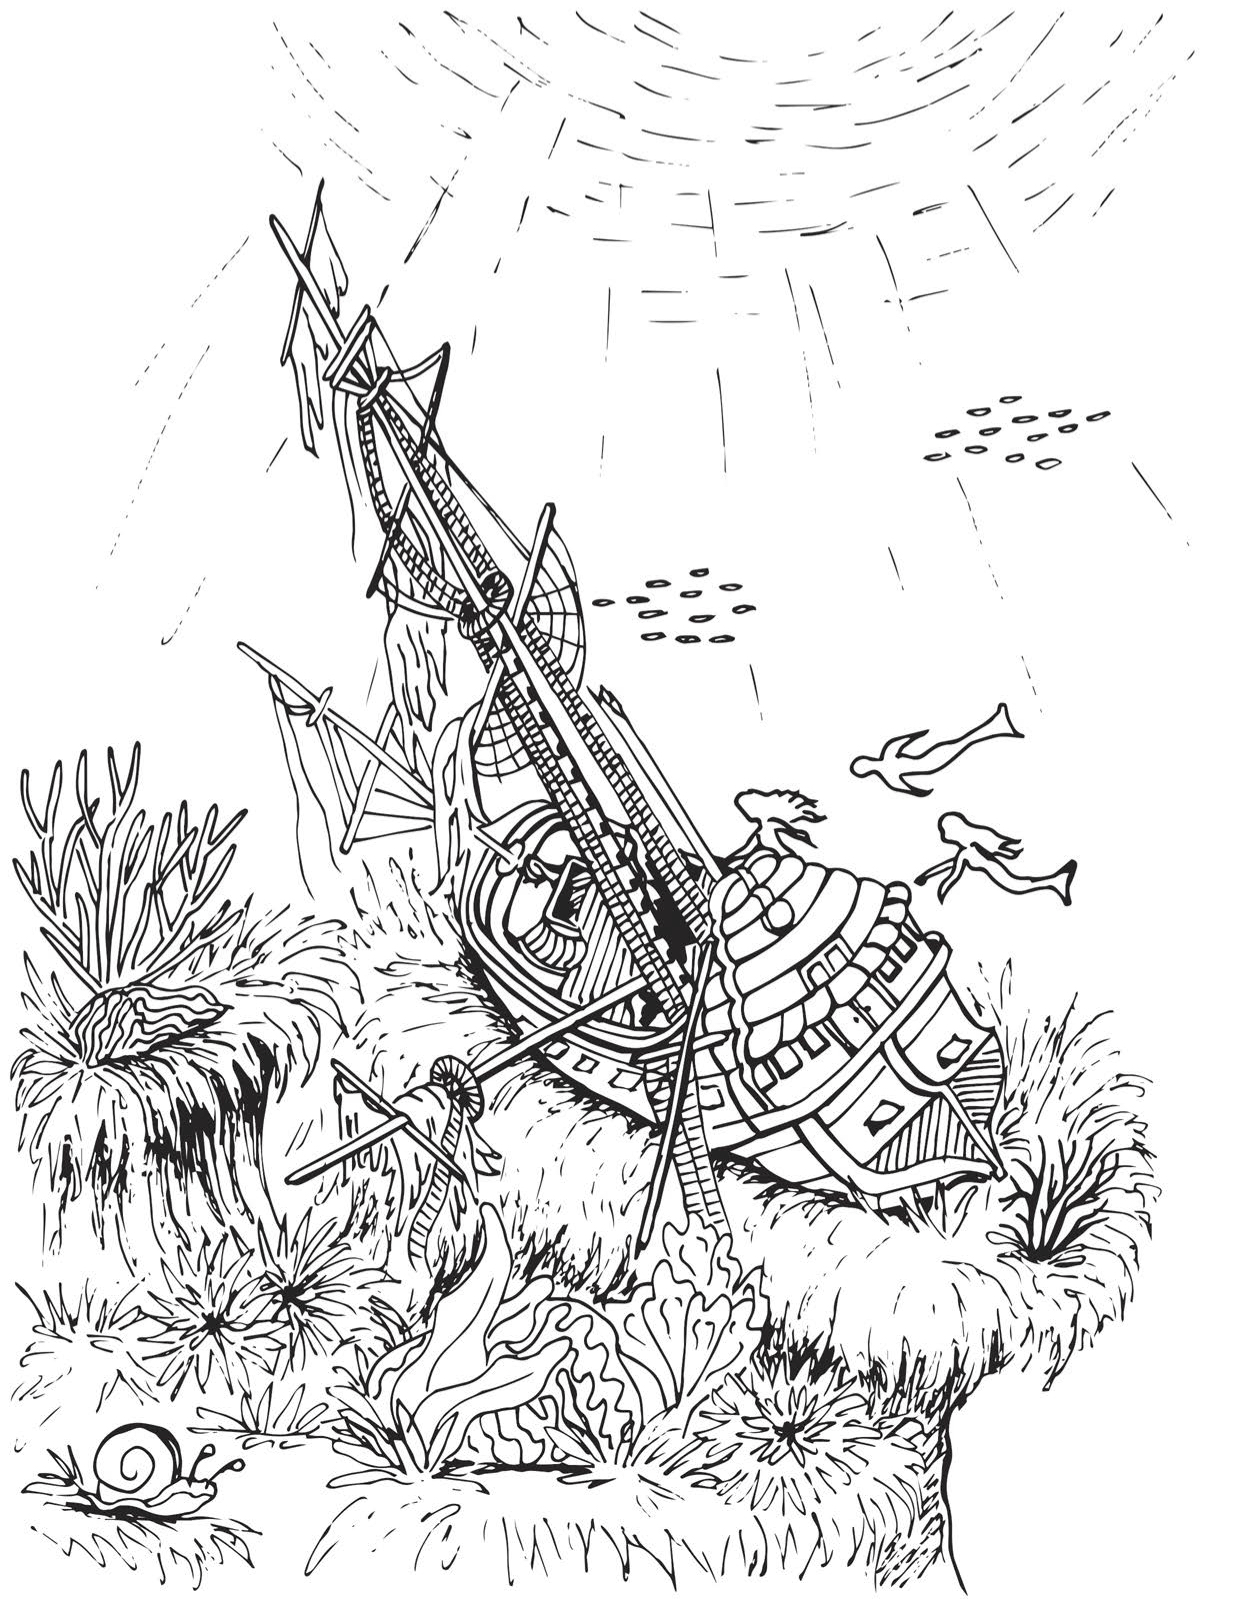 Mermaids Love to Explore Shipwrecks Coloring Page